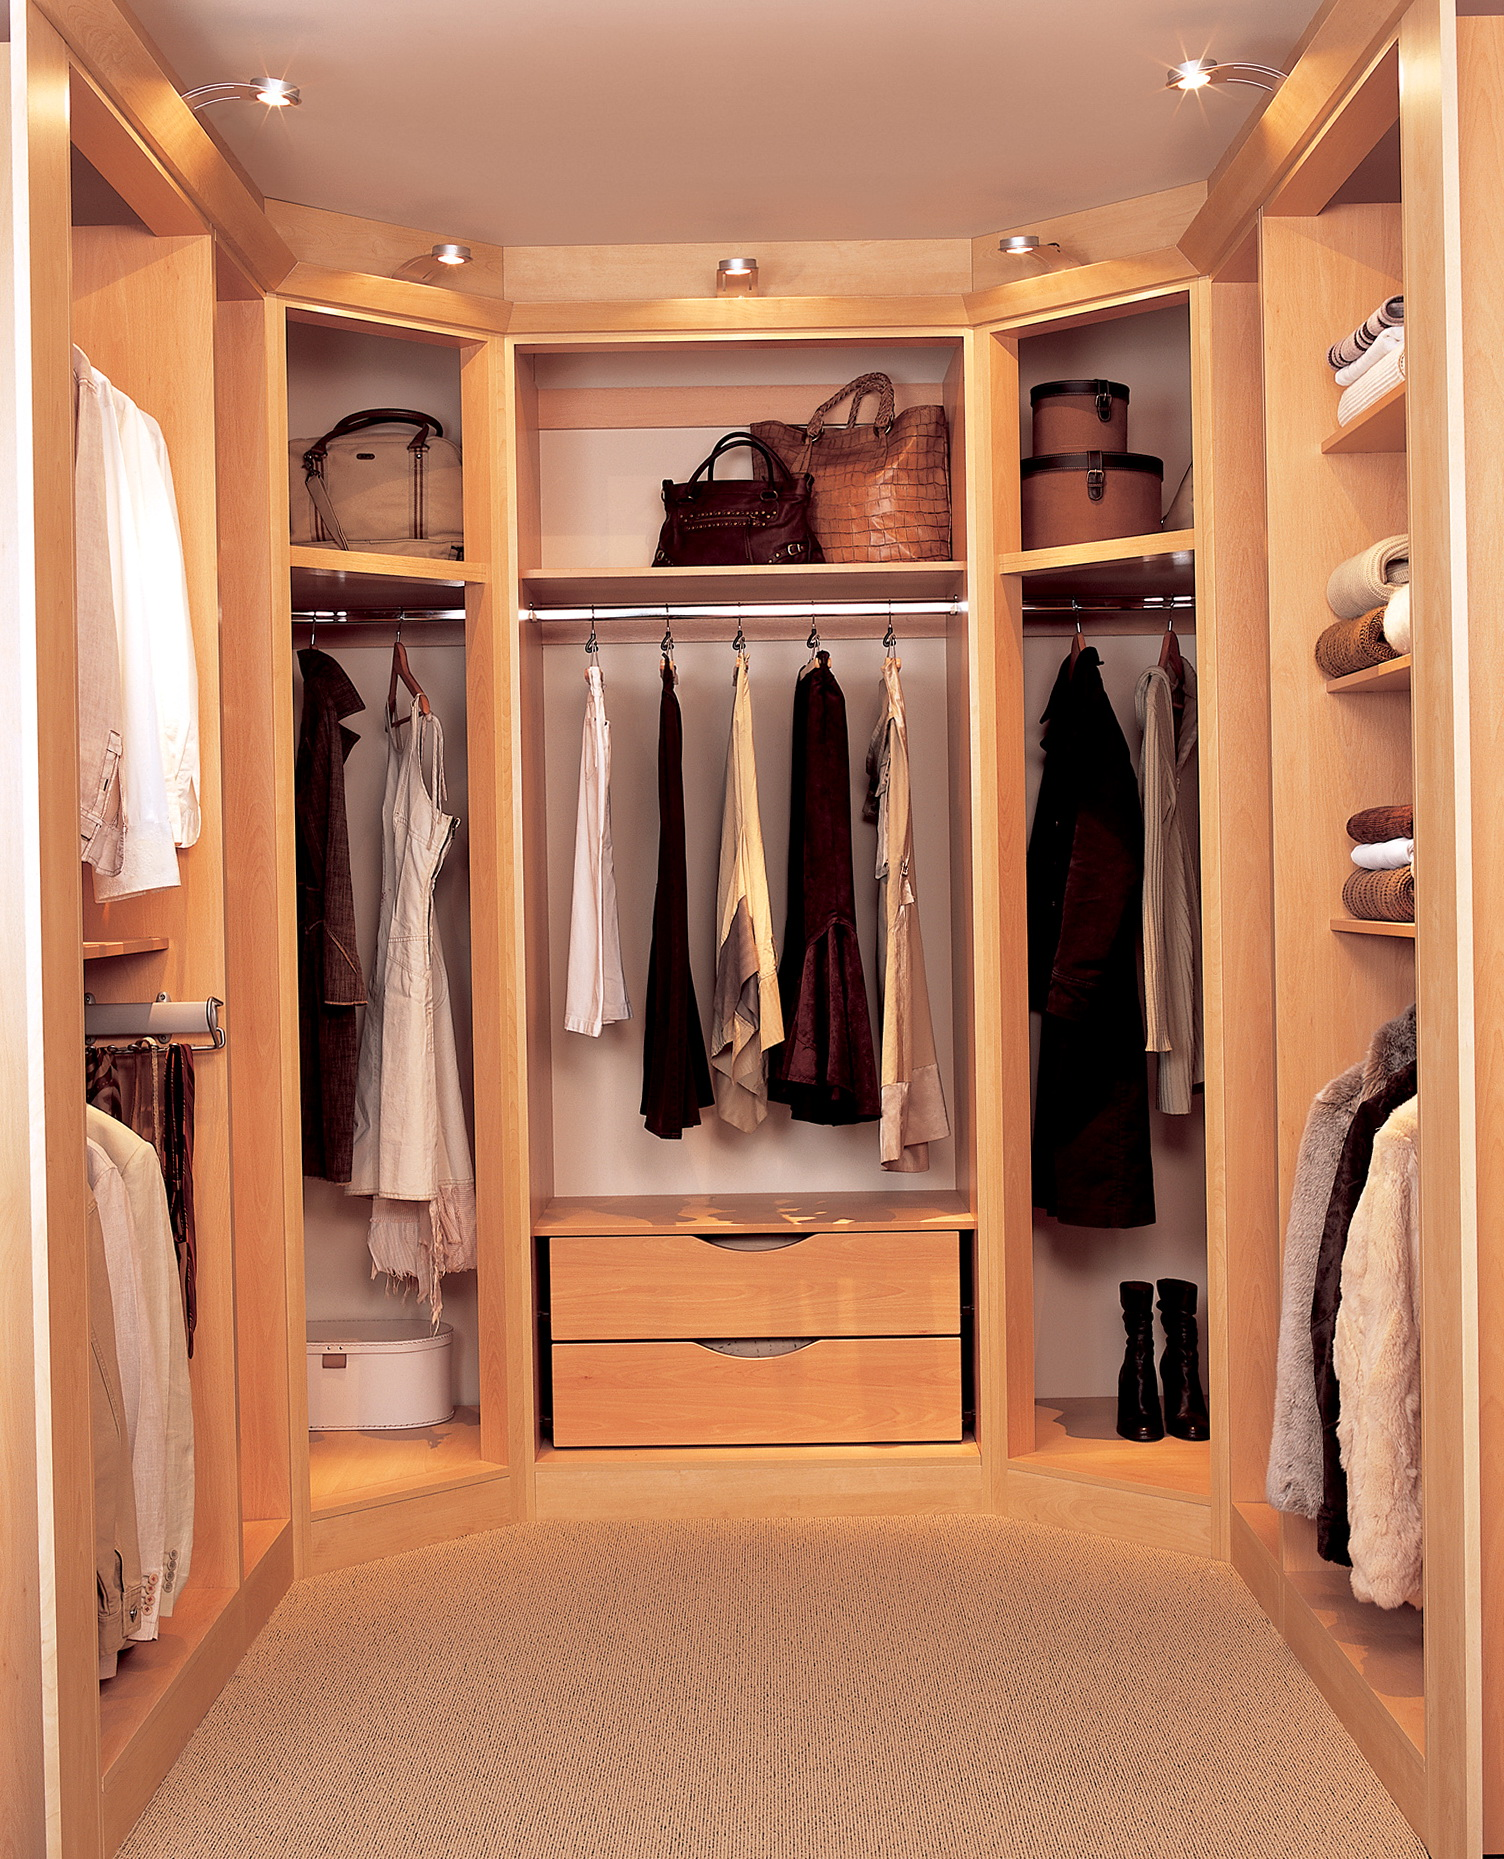 Ikea walk in closet organizers home design ideas for Walk in closet organizer ikea